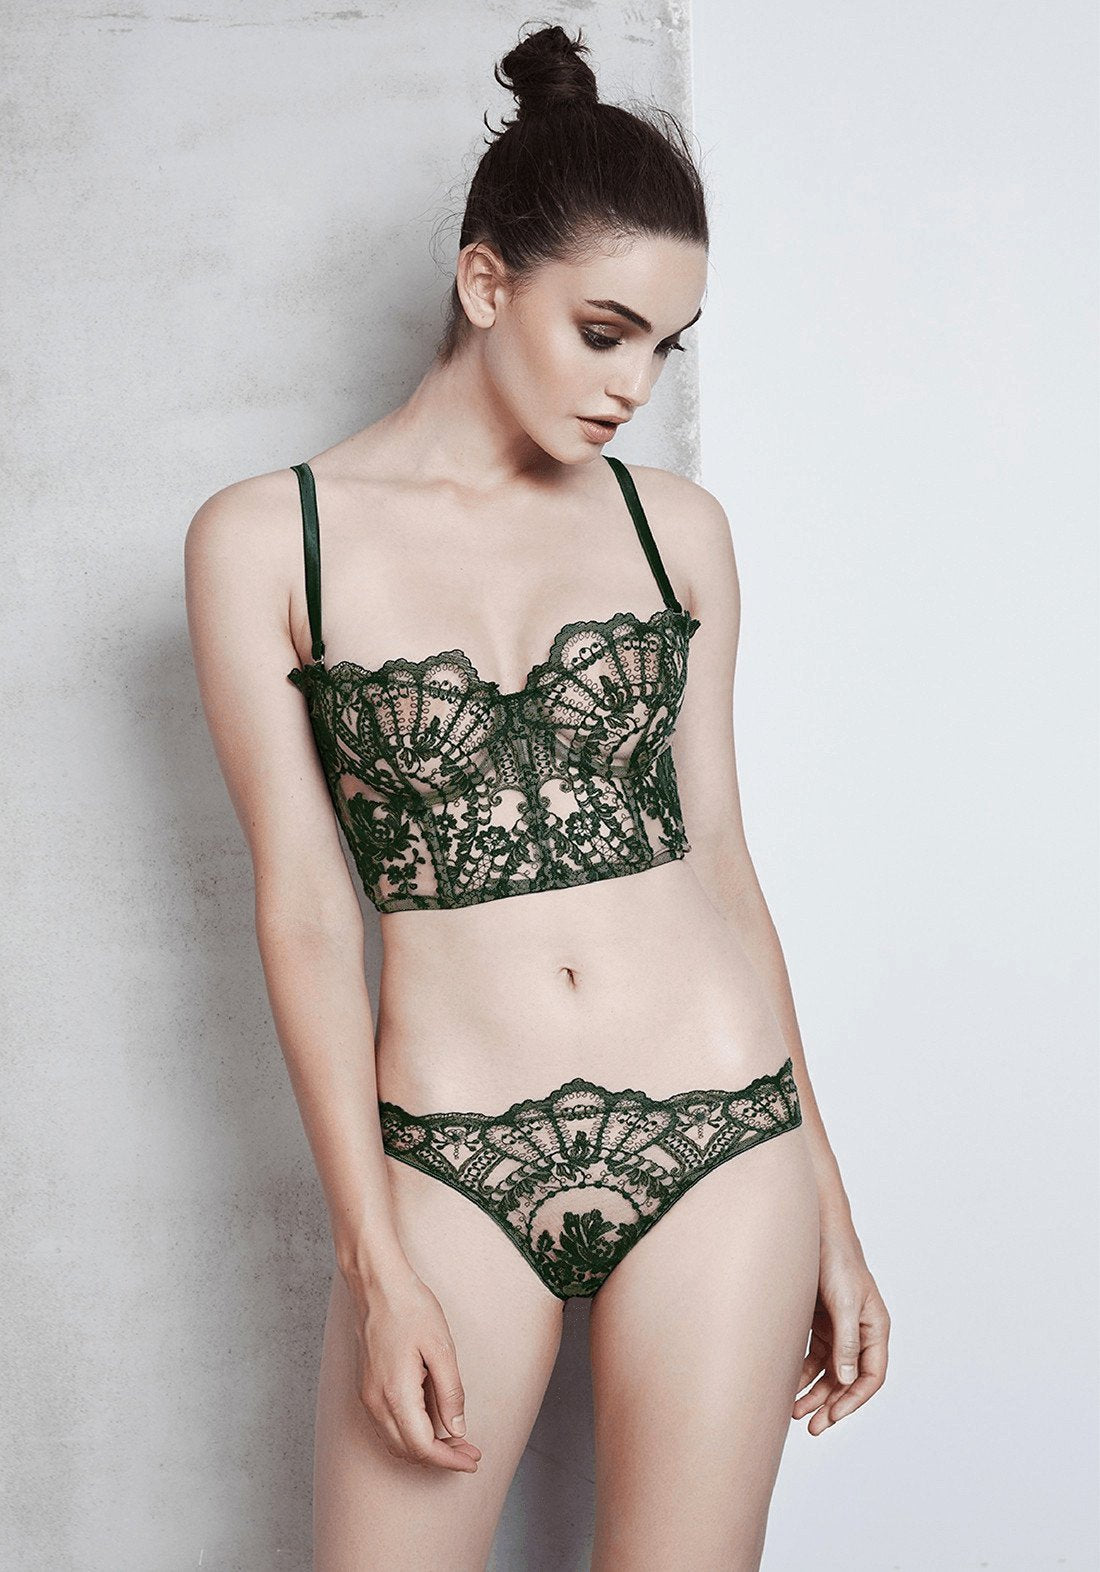 La Naissance d'Aphrodite Half Cup Bustier in Deep Green/Skin